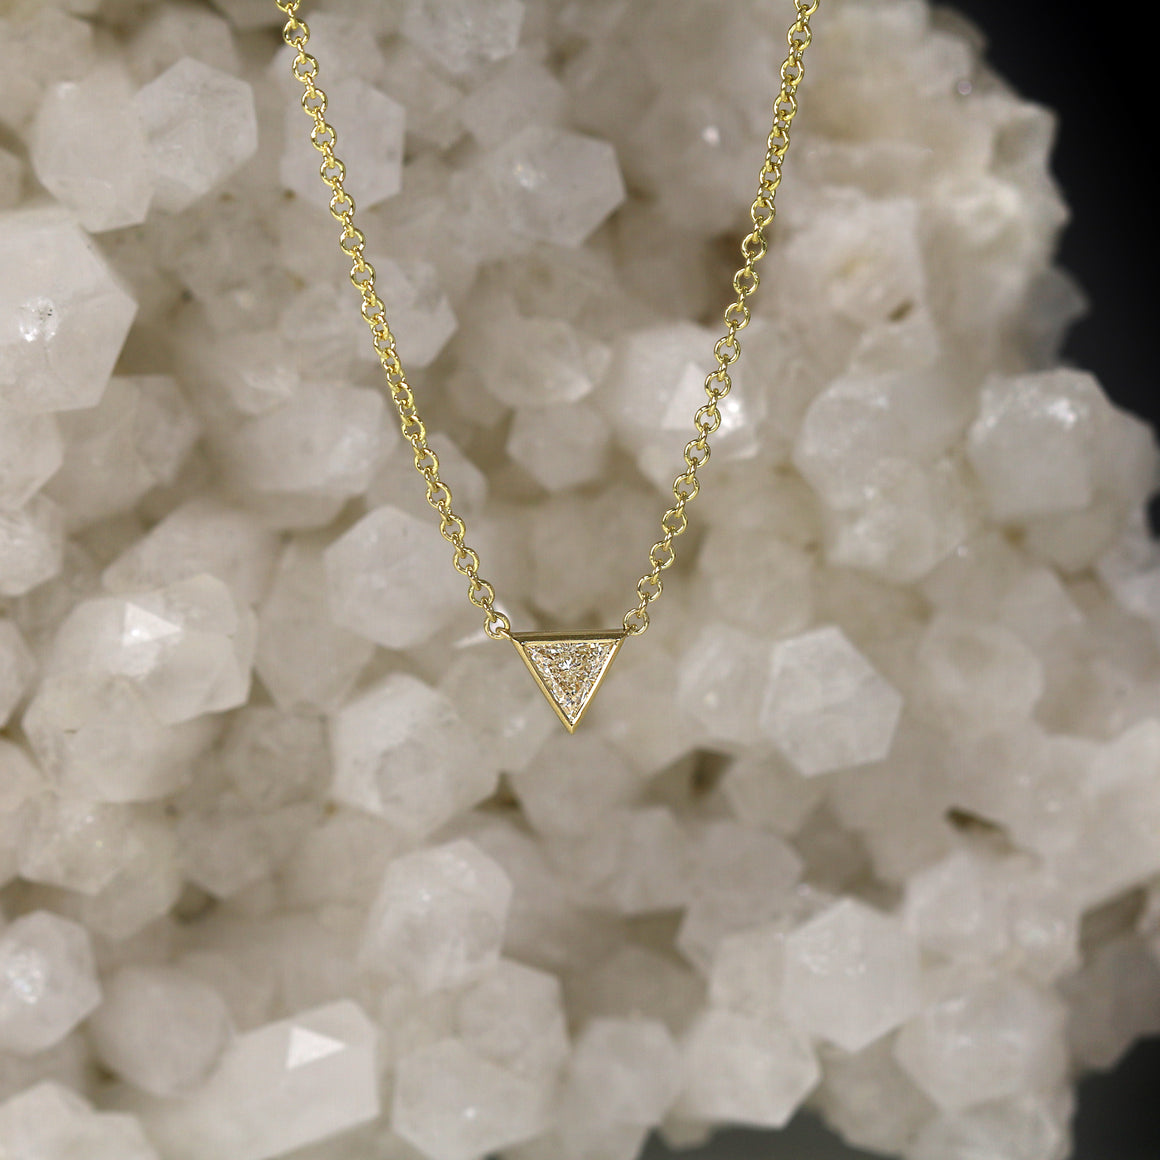 Triangular Diamond Solitaire Bezel Set Necklace in Yellow Gold - 0.18ct